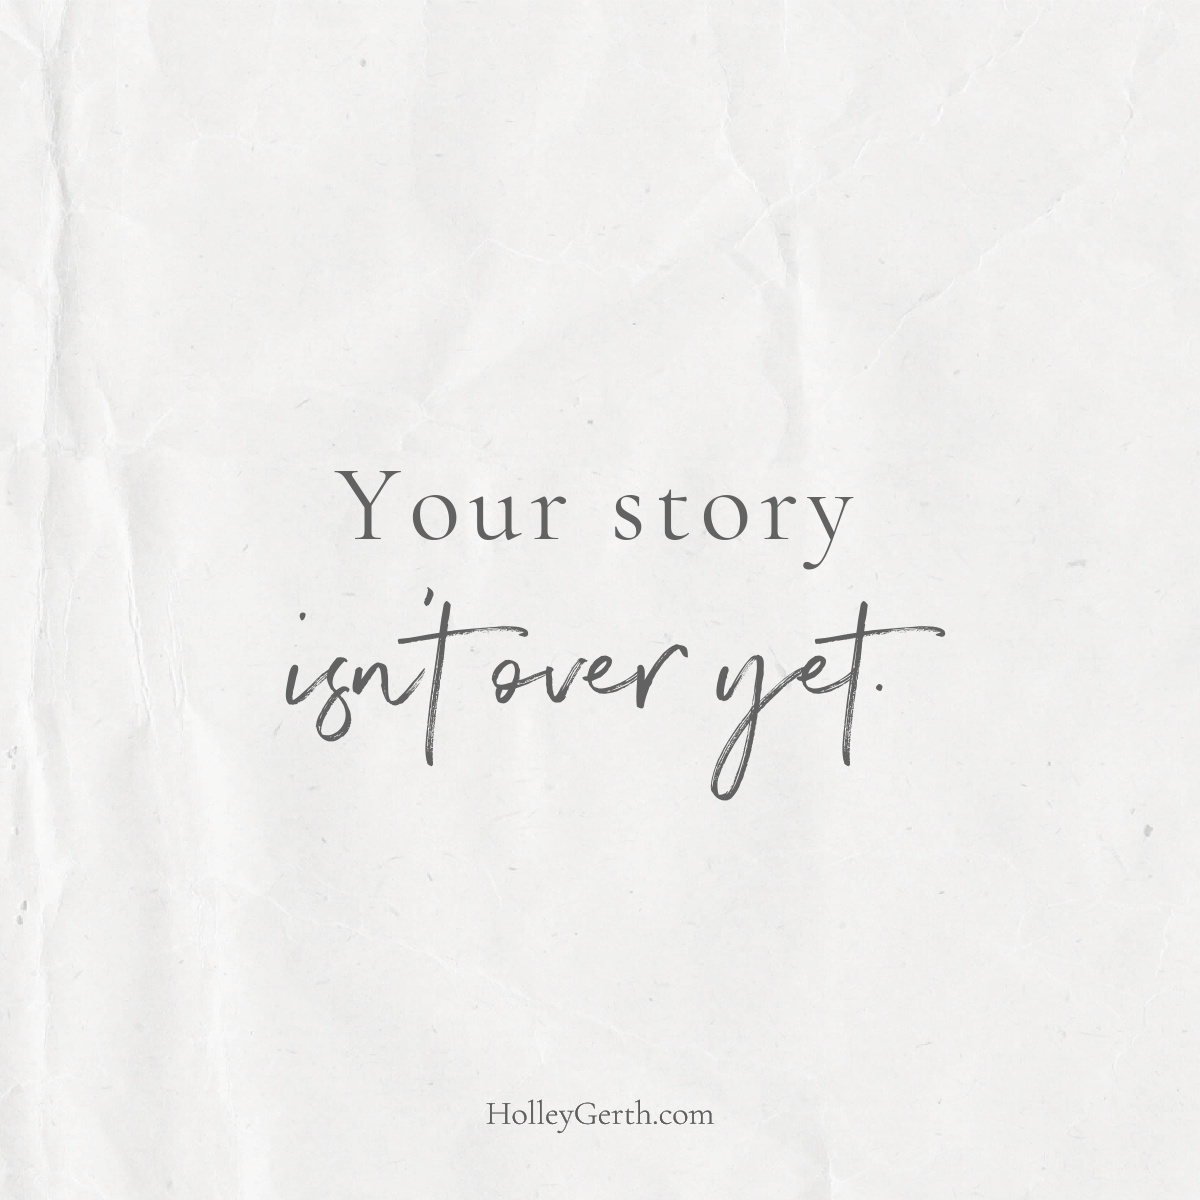 Your story isn't over yet.